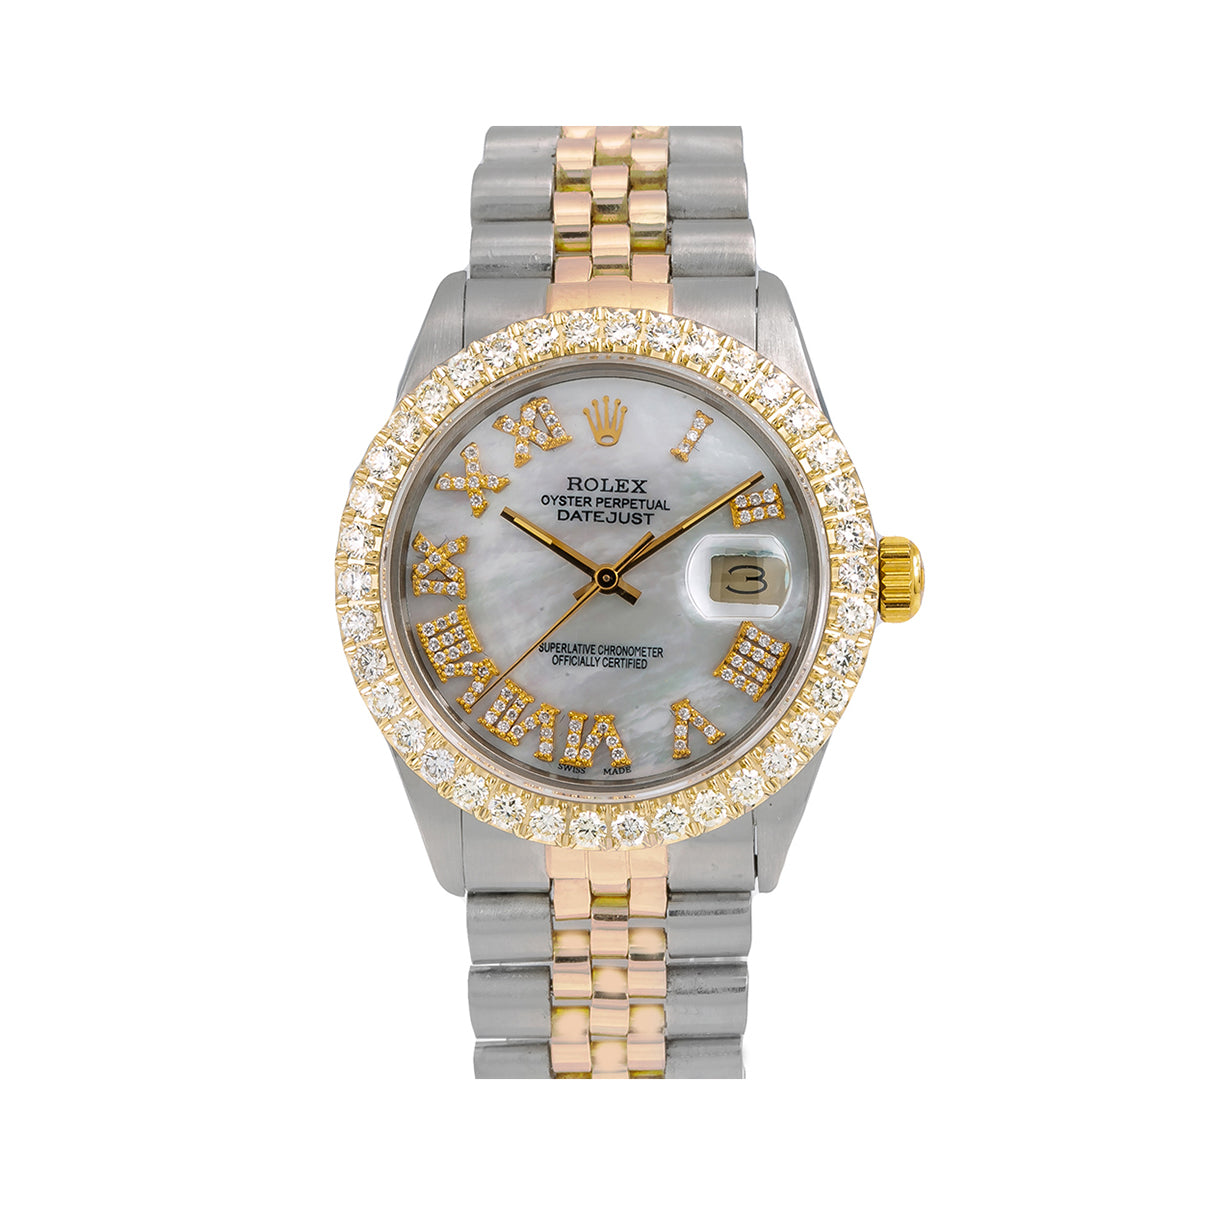 Rolex Datejust 16013 36MM Mother of Pearl Diamond Dial With 3.75 CT Diamonds